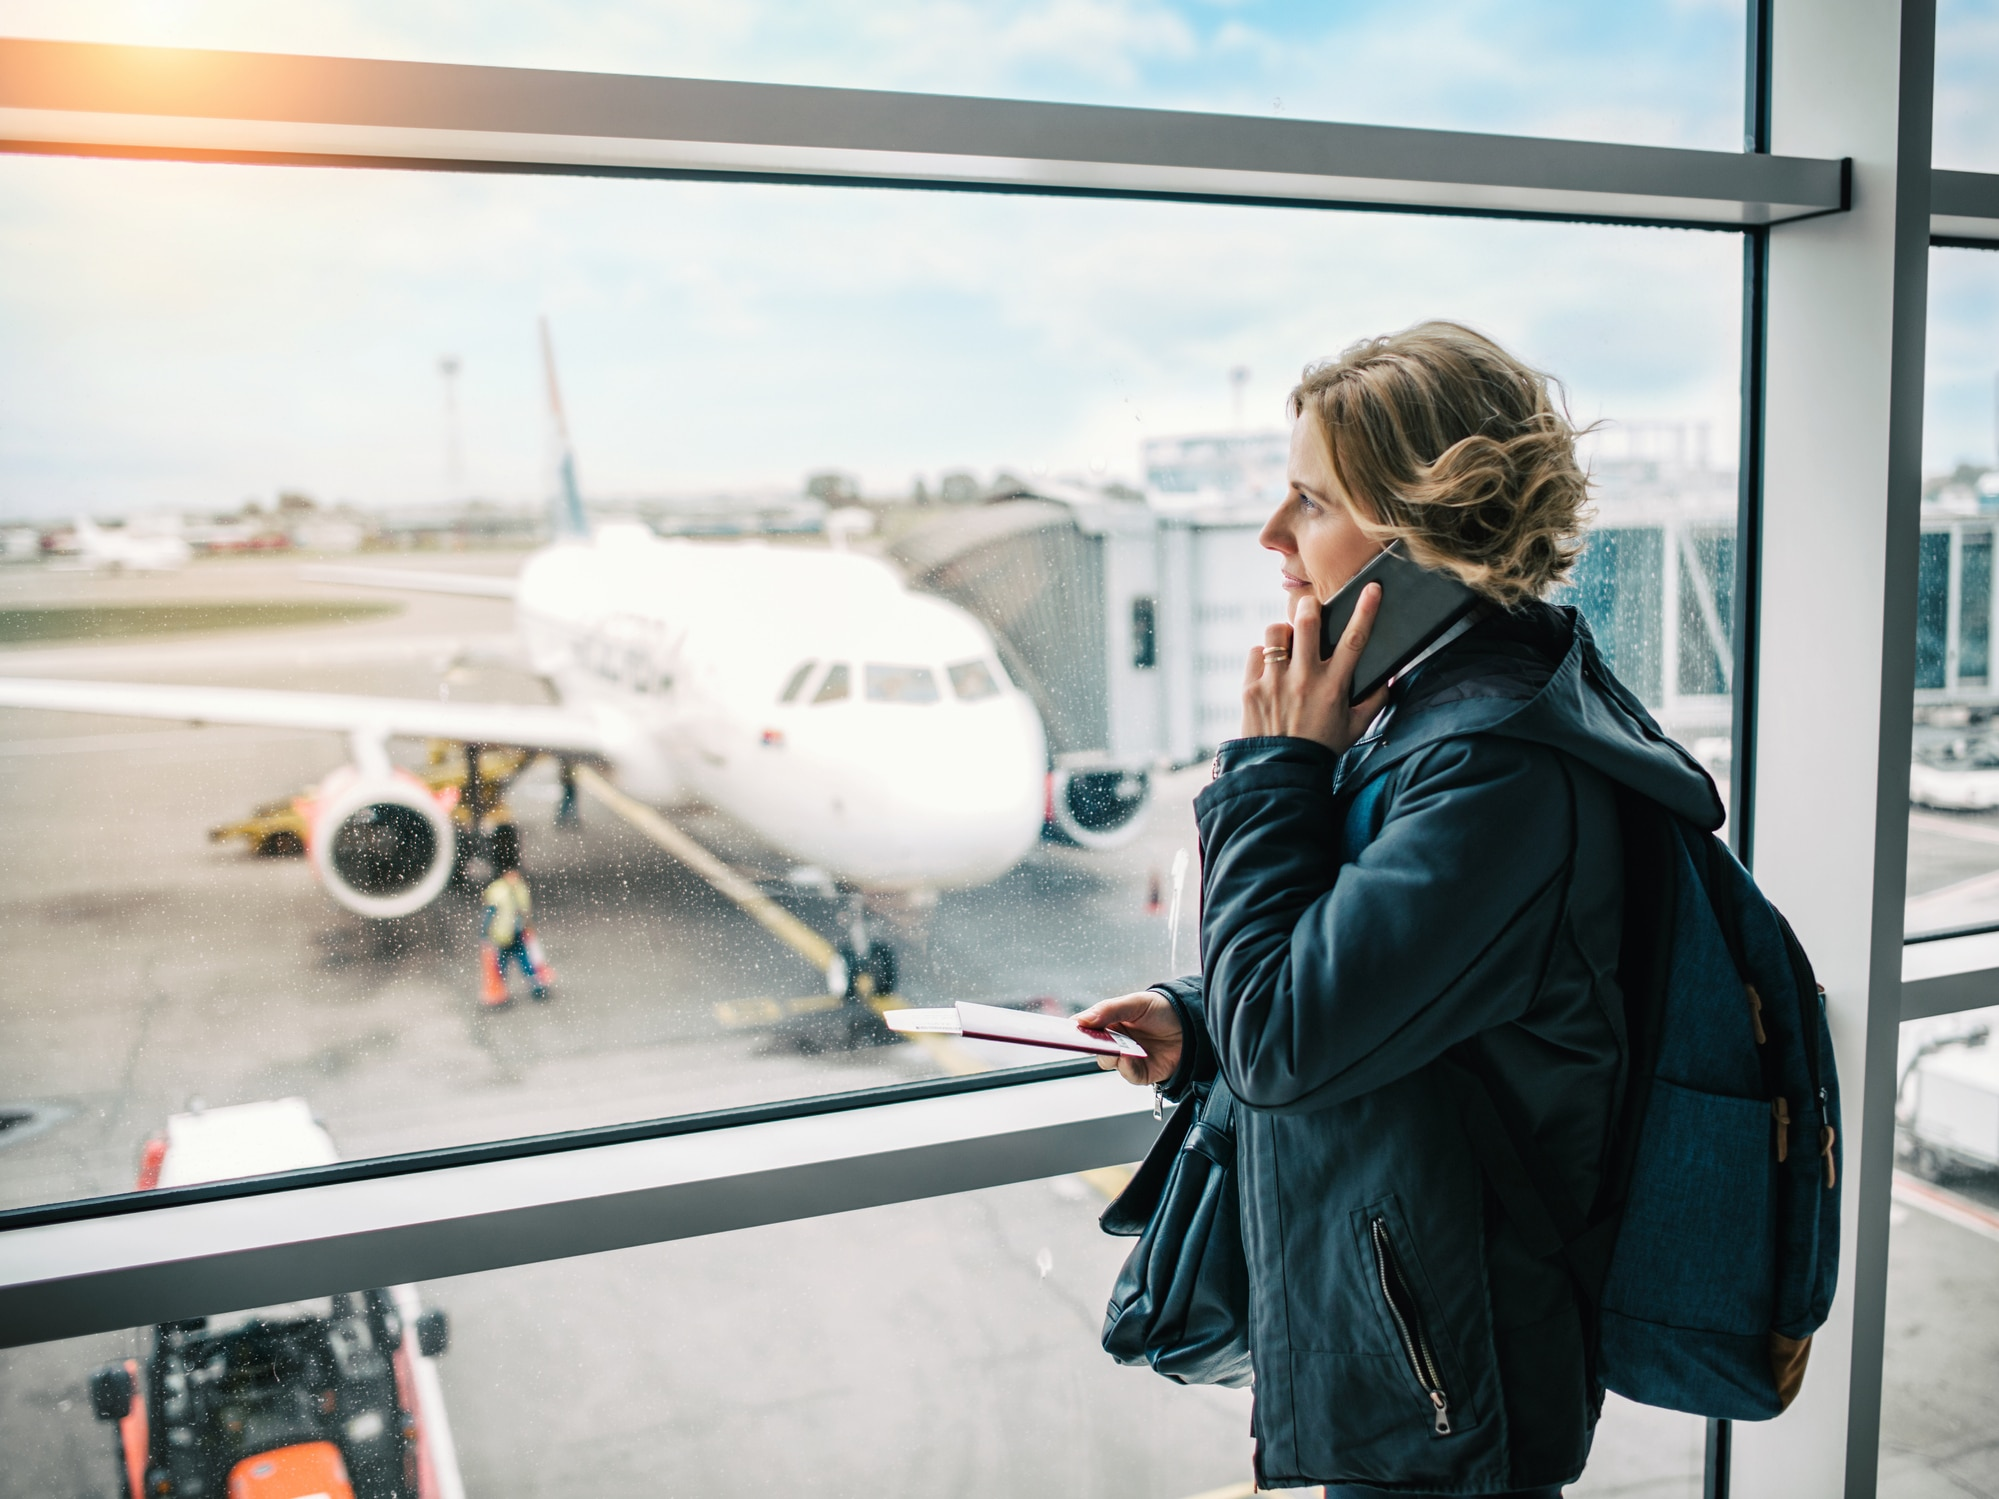 A woman in a green coat on wating for her plain at an airport